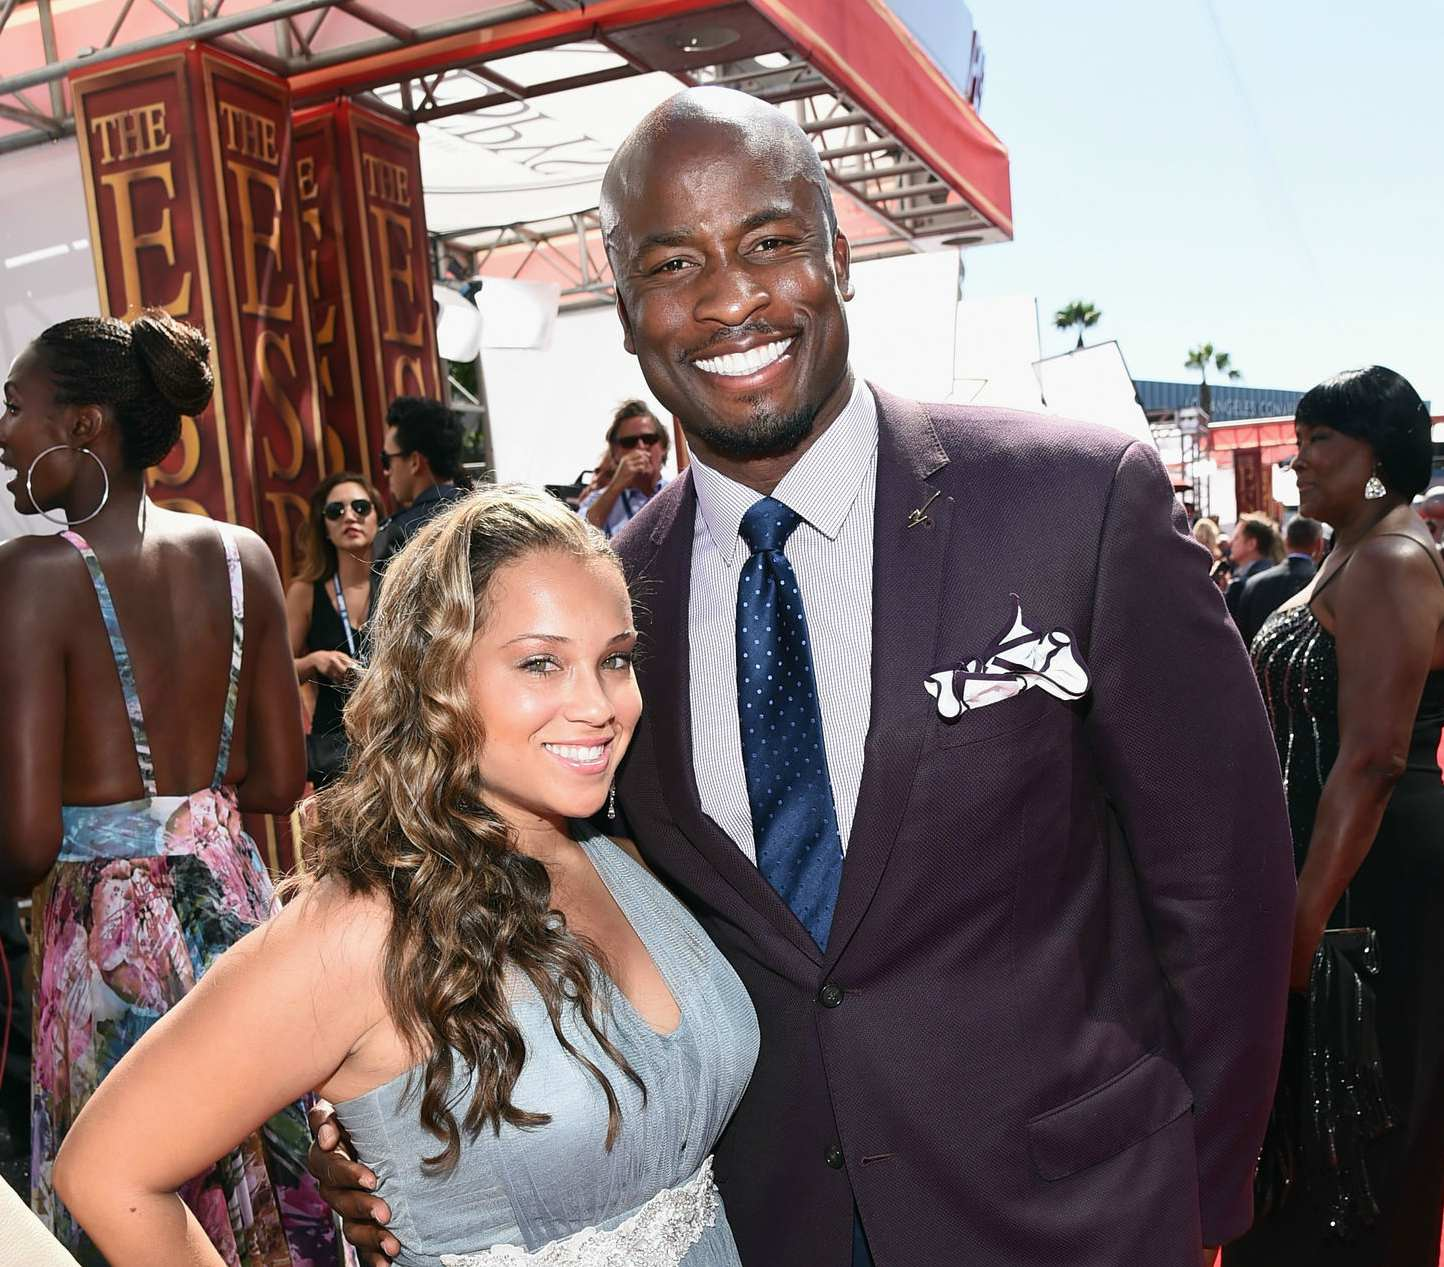 Akbar Gbajabiamila with wife Eileen Gbaja-Biamila, attends The 2014 ESPYS at Nokia Theatre L.A. Live on July 16, 2014 in Los Angeles, California